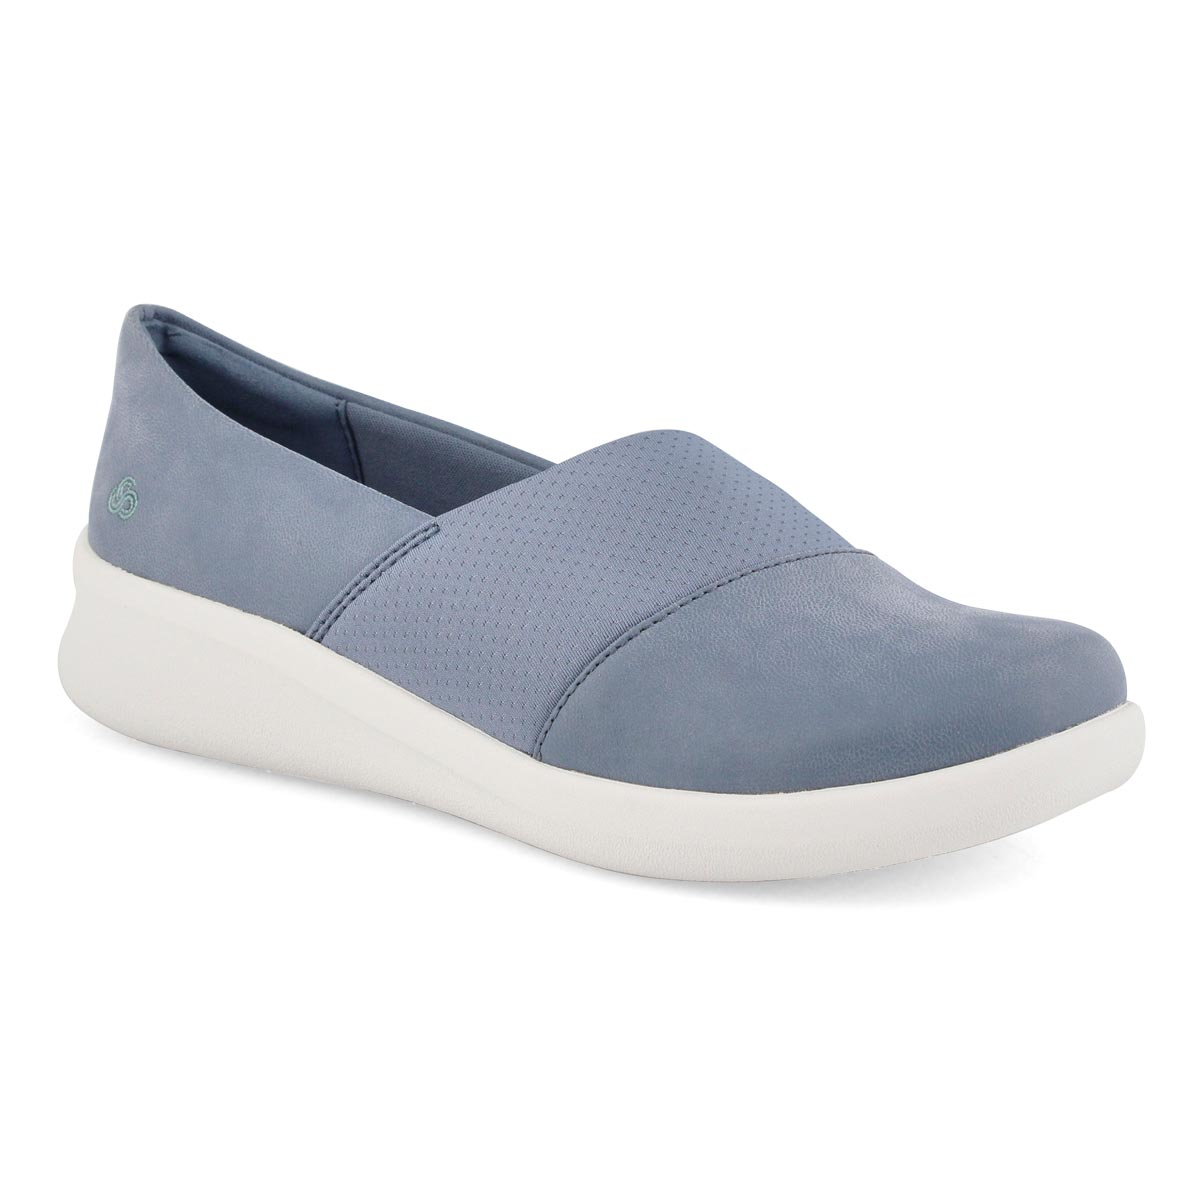 Lds Sillian 2.0 Moon blue casual loafer